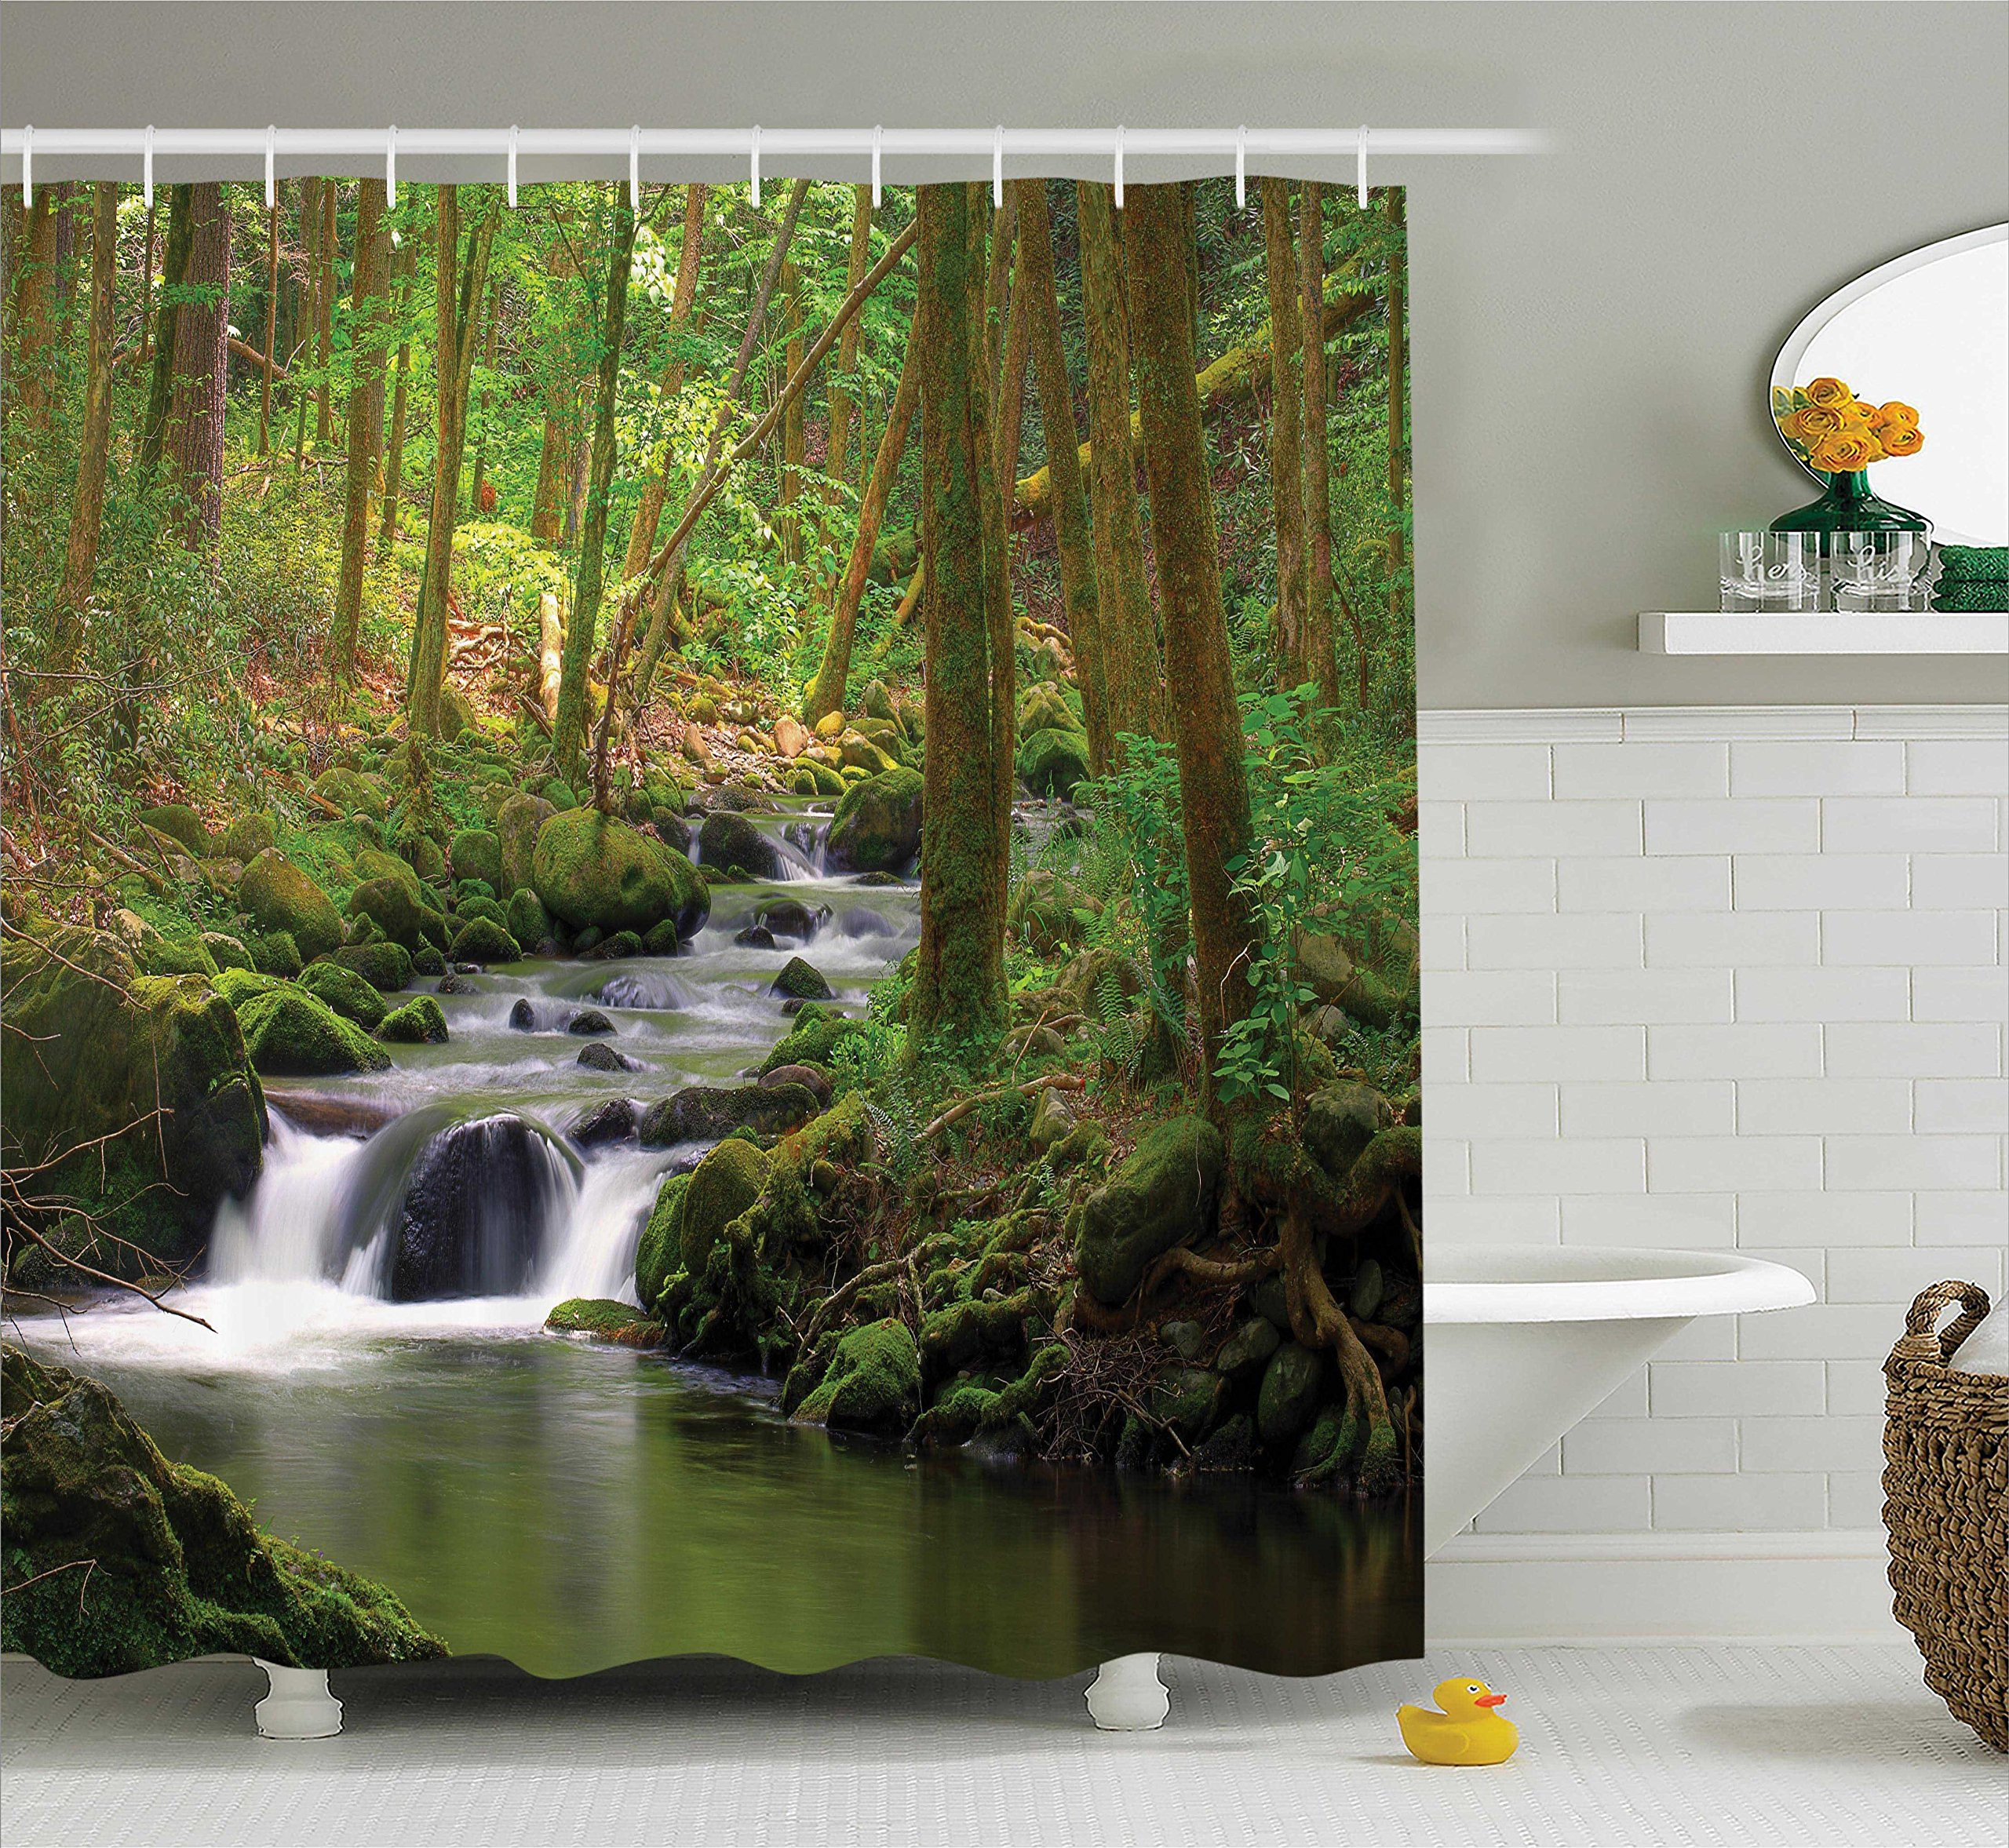 Ambesonne Nature Shower Curtain Green Decor, Waterfall and Stream Flowing in The Forest Over Mossy Rocks Tree Foliage Splash Hiking, Bathroom Accessories, with Hooks, 69W X 70L inches, Green Brown